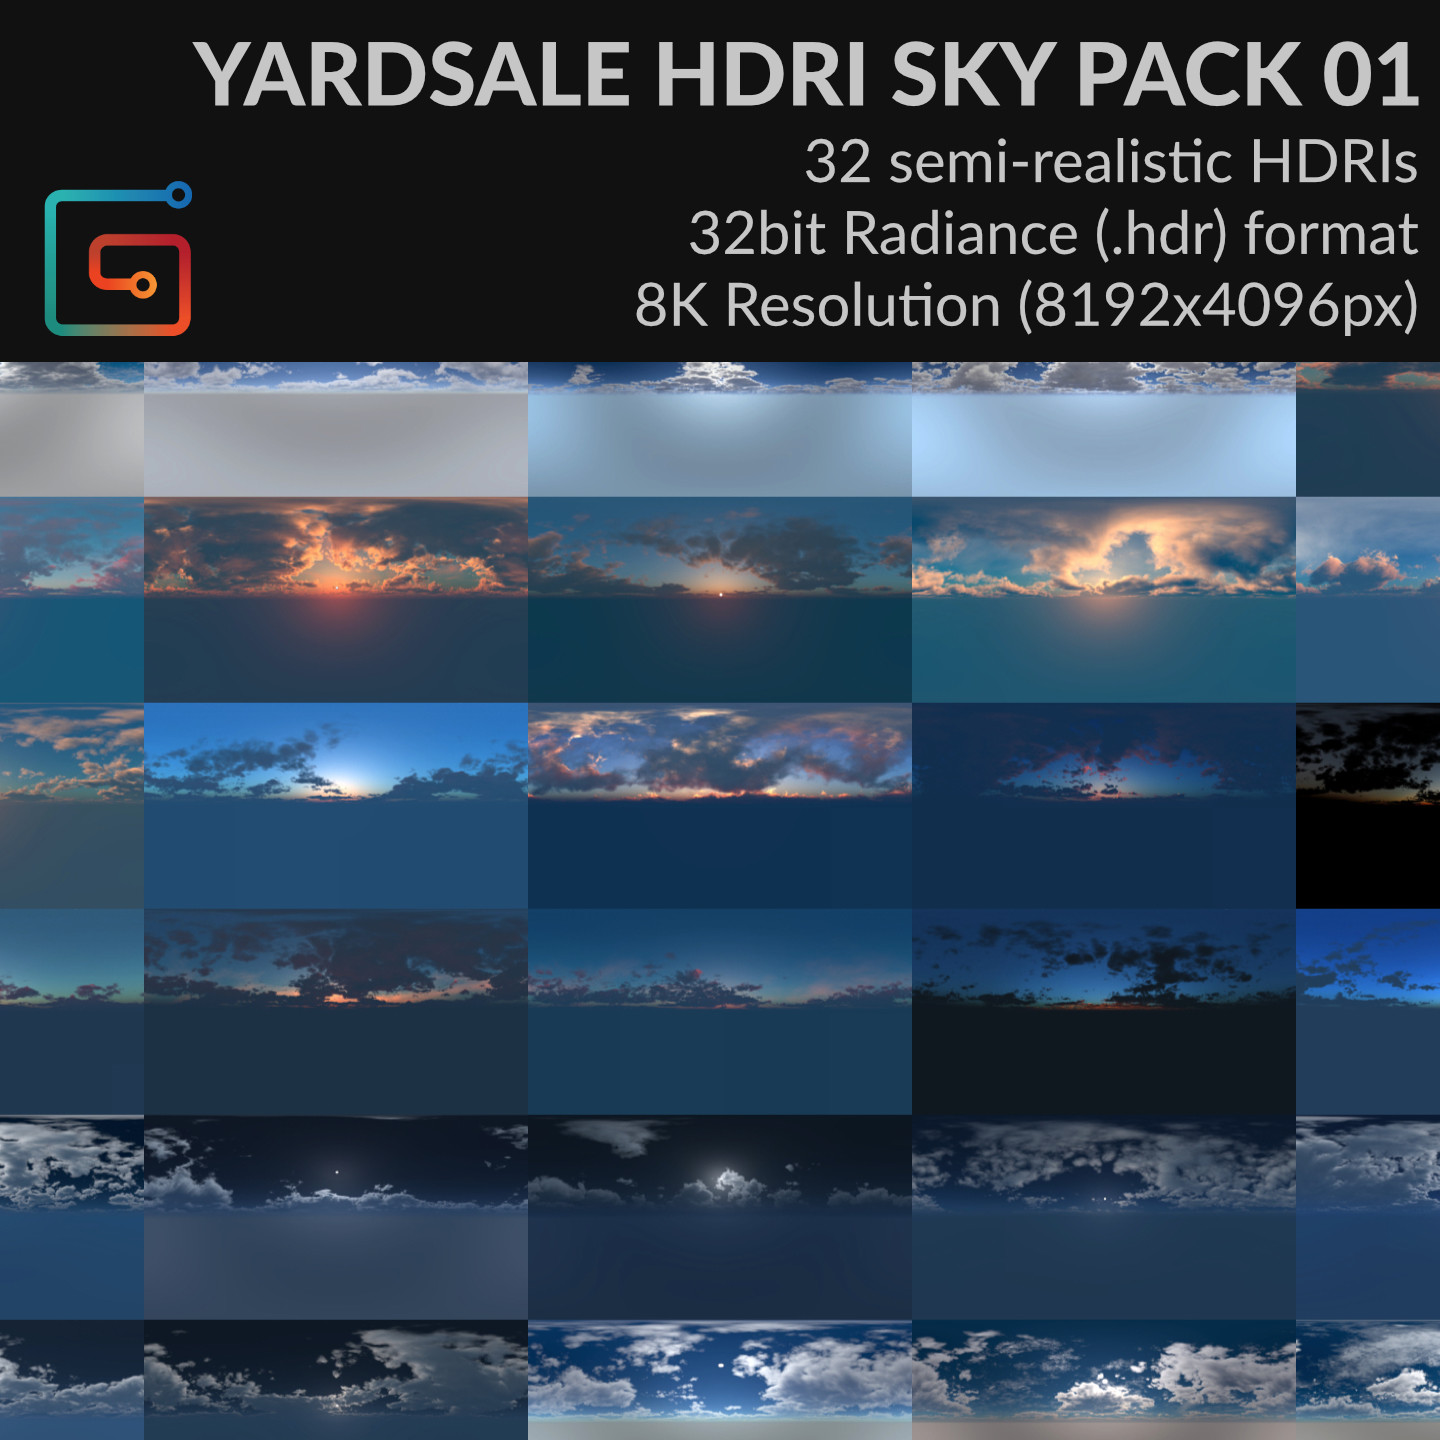 YARDSALE : HDRI SKY PACK 01